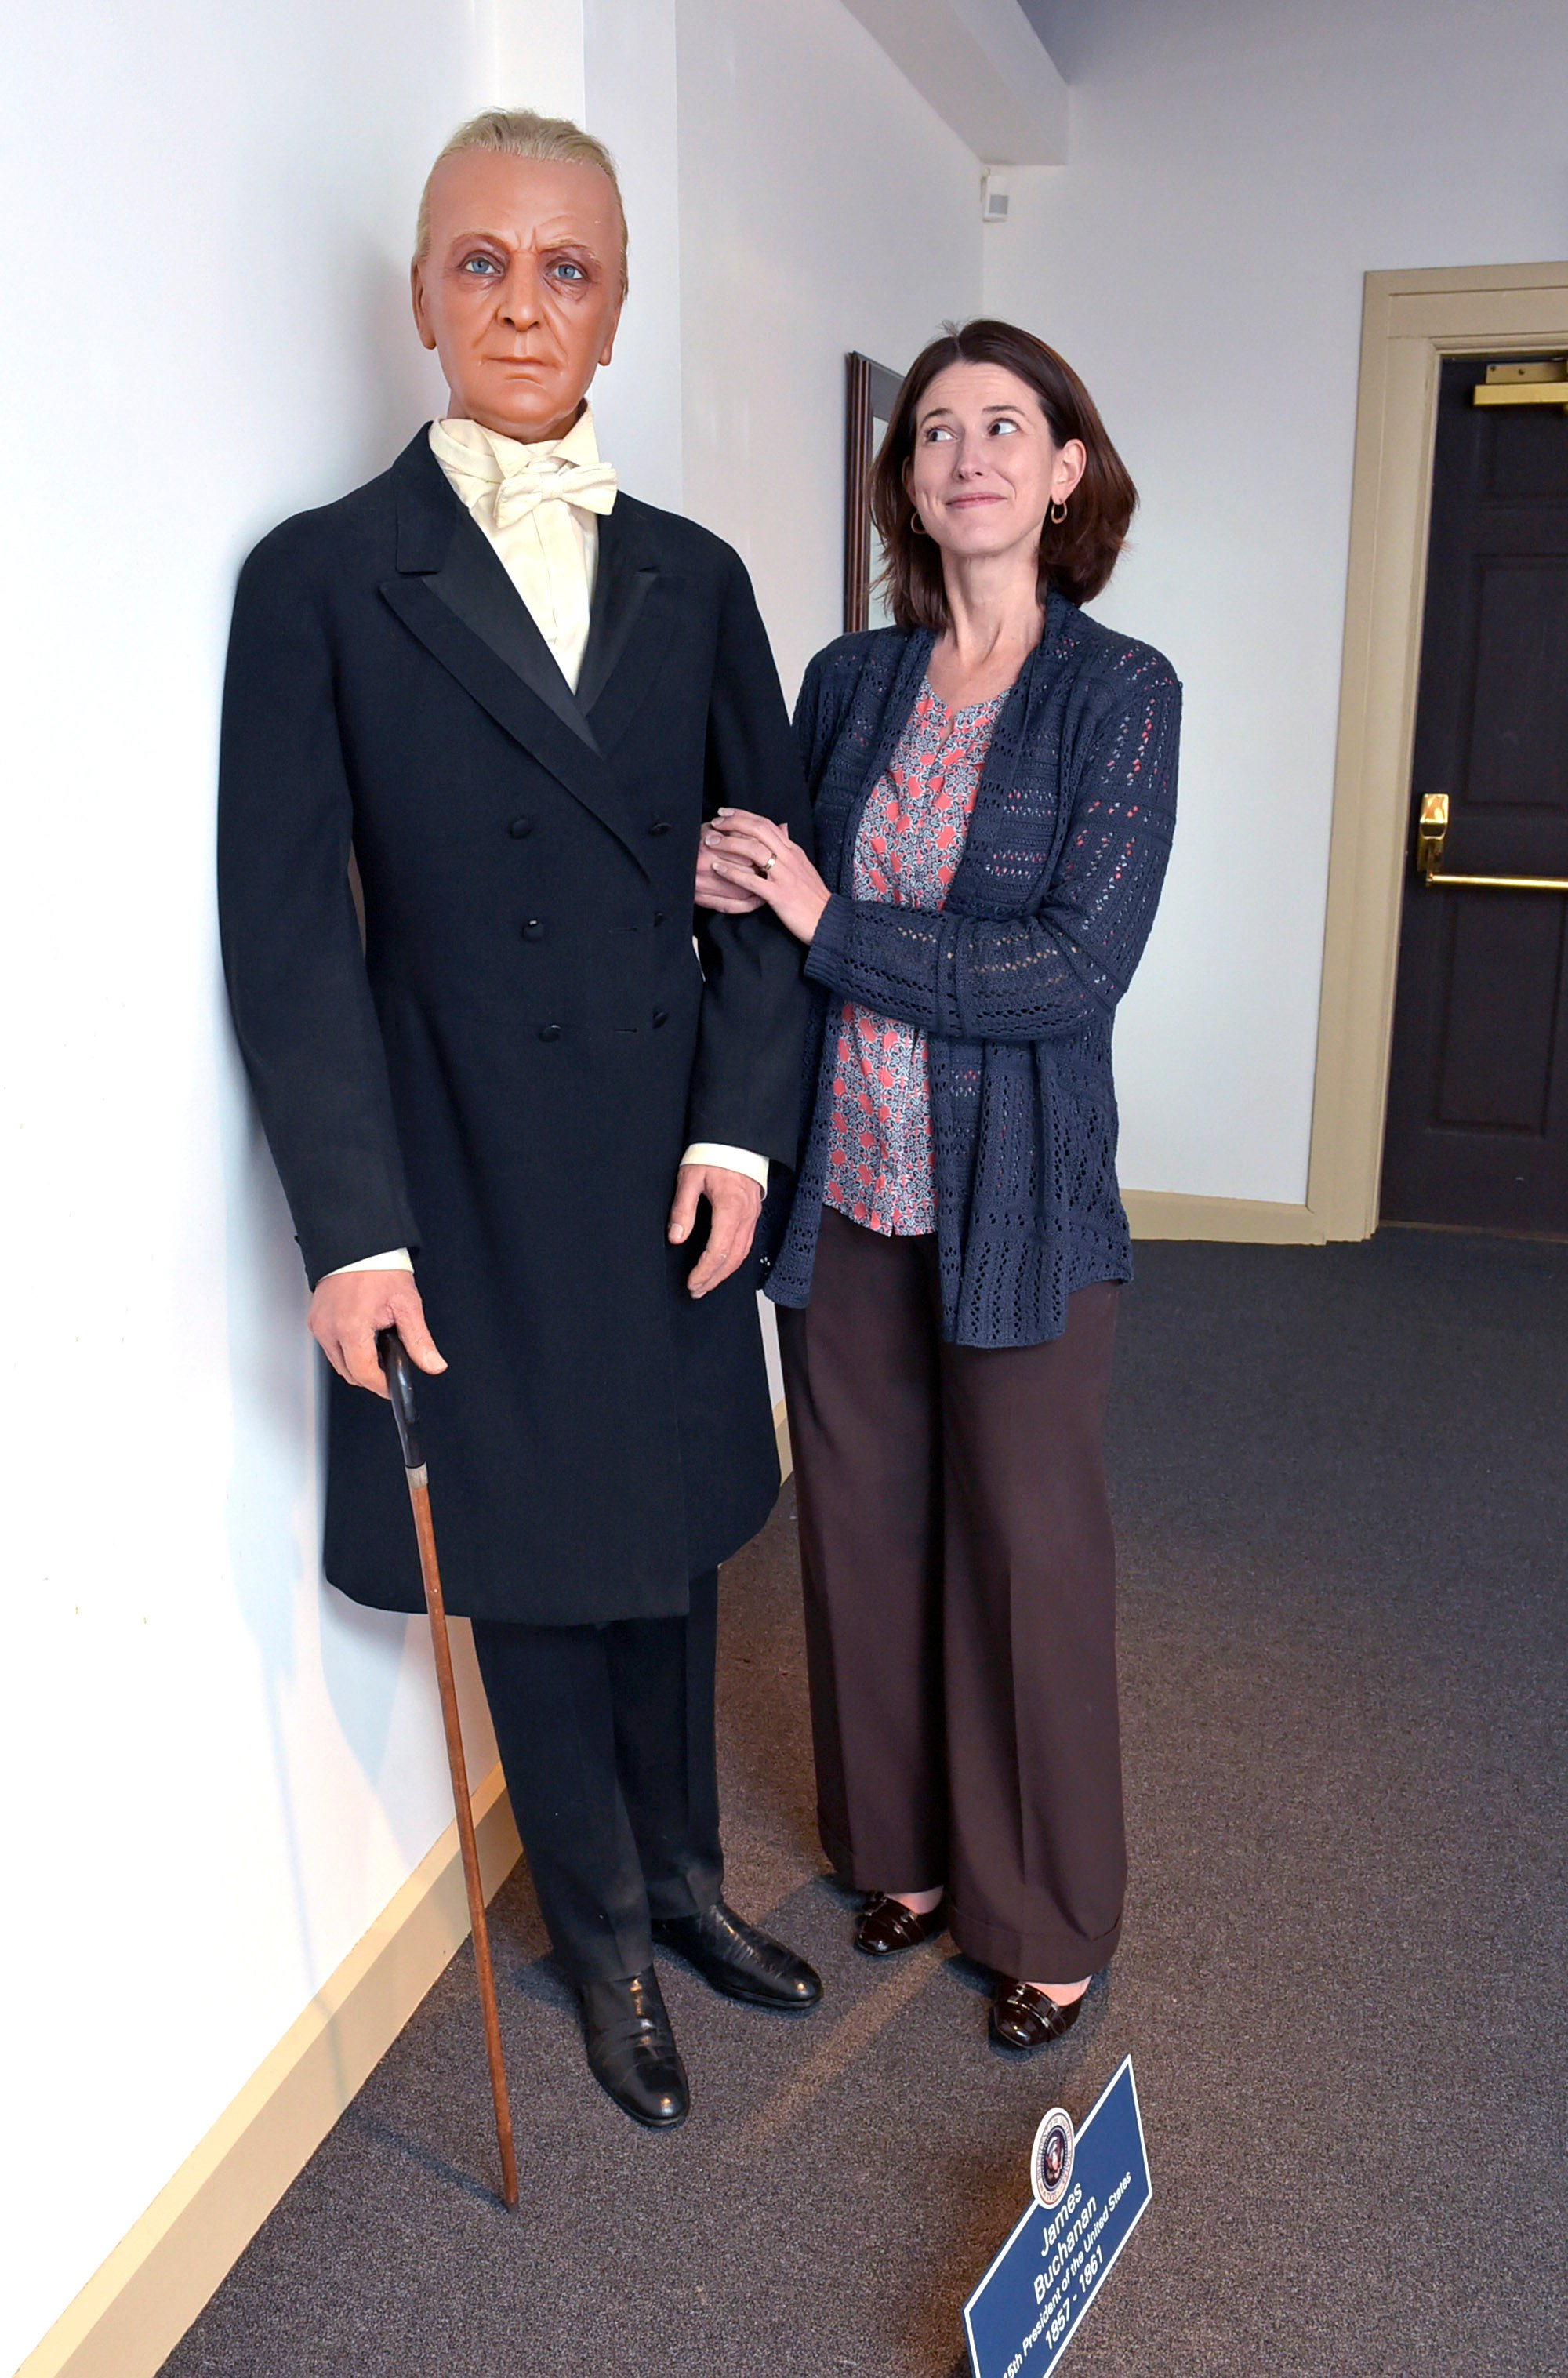 Wax figure of James Buchanan comes home to Wheatland after winning ...